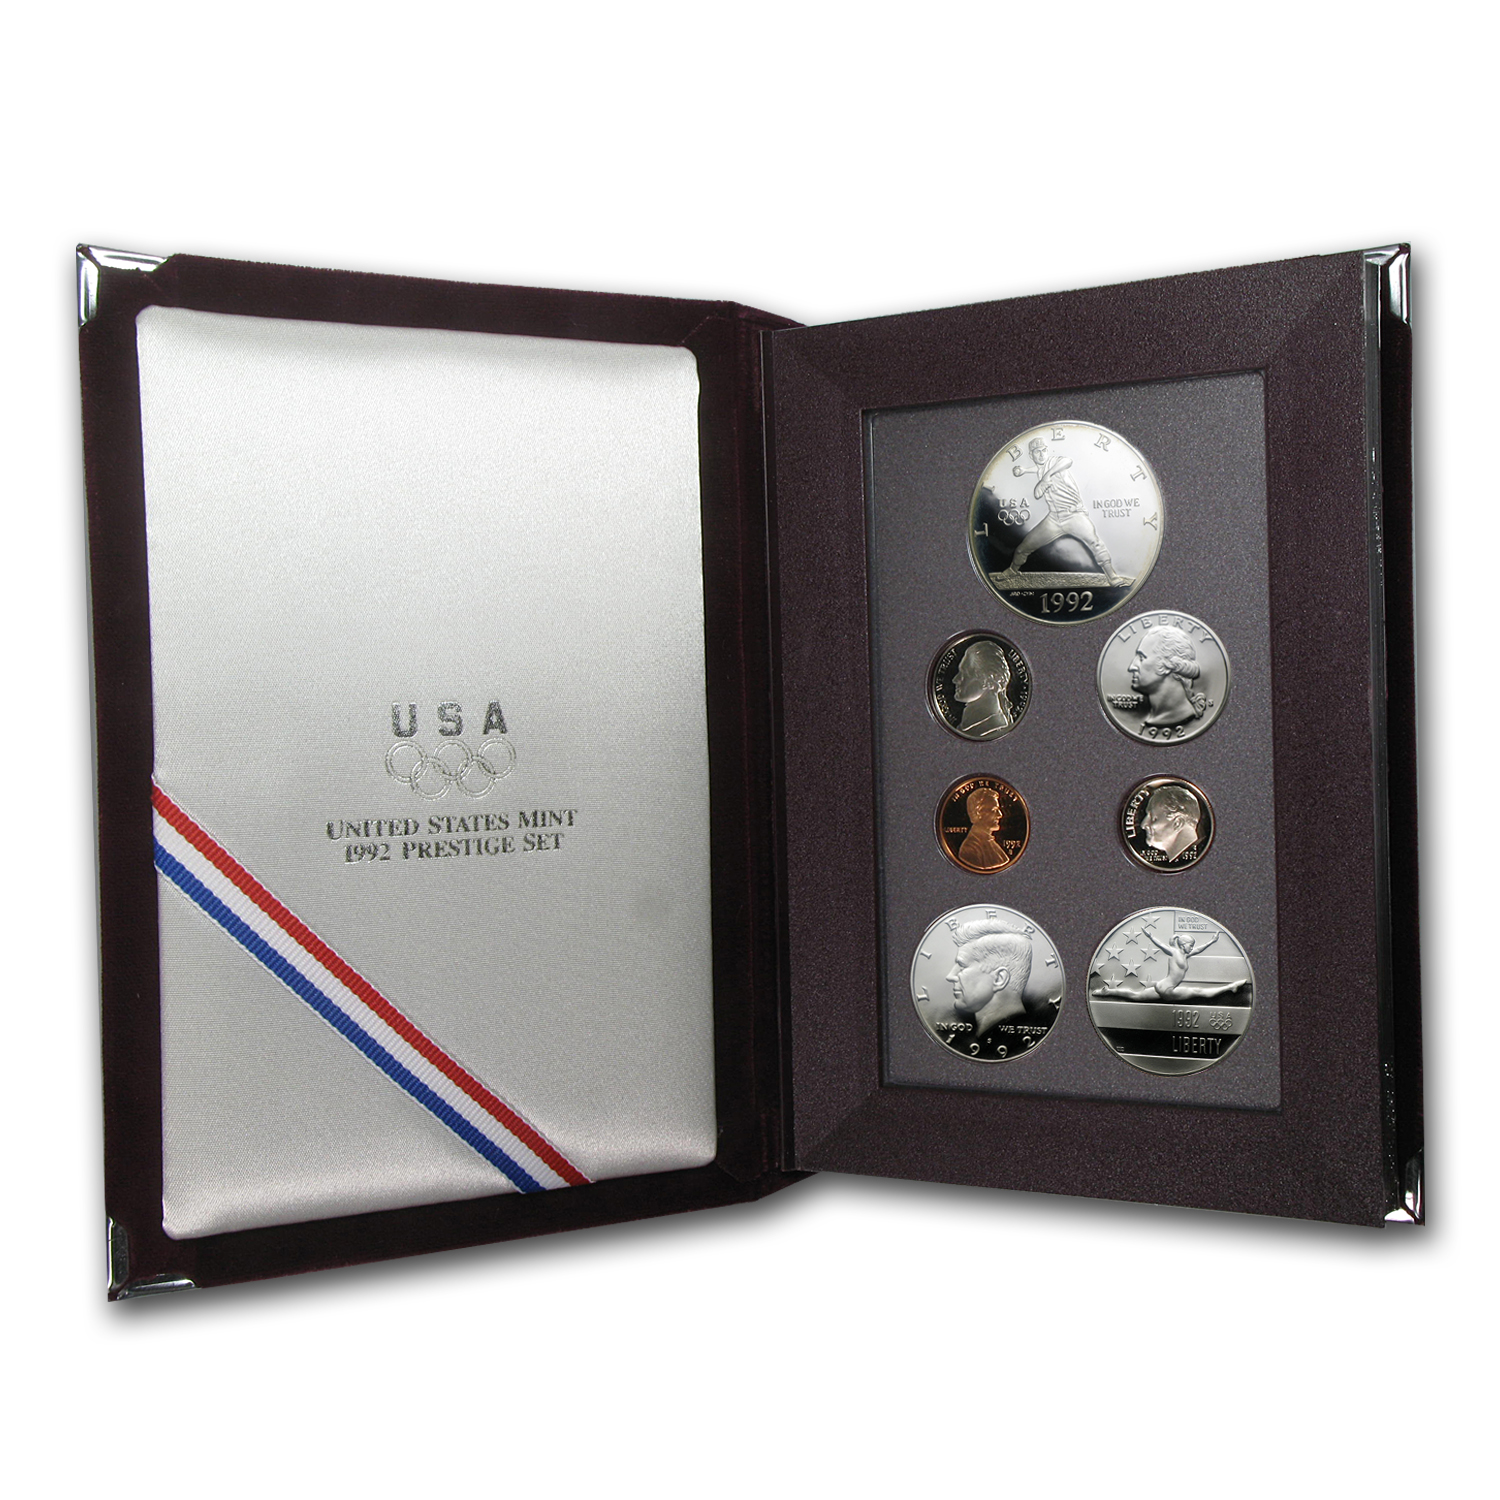 1992 U.S. Mint Prestige Set